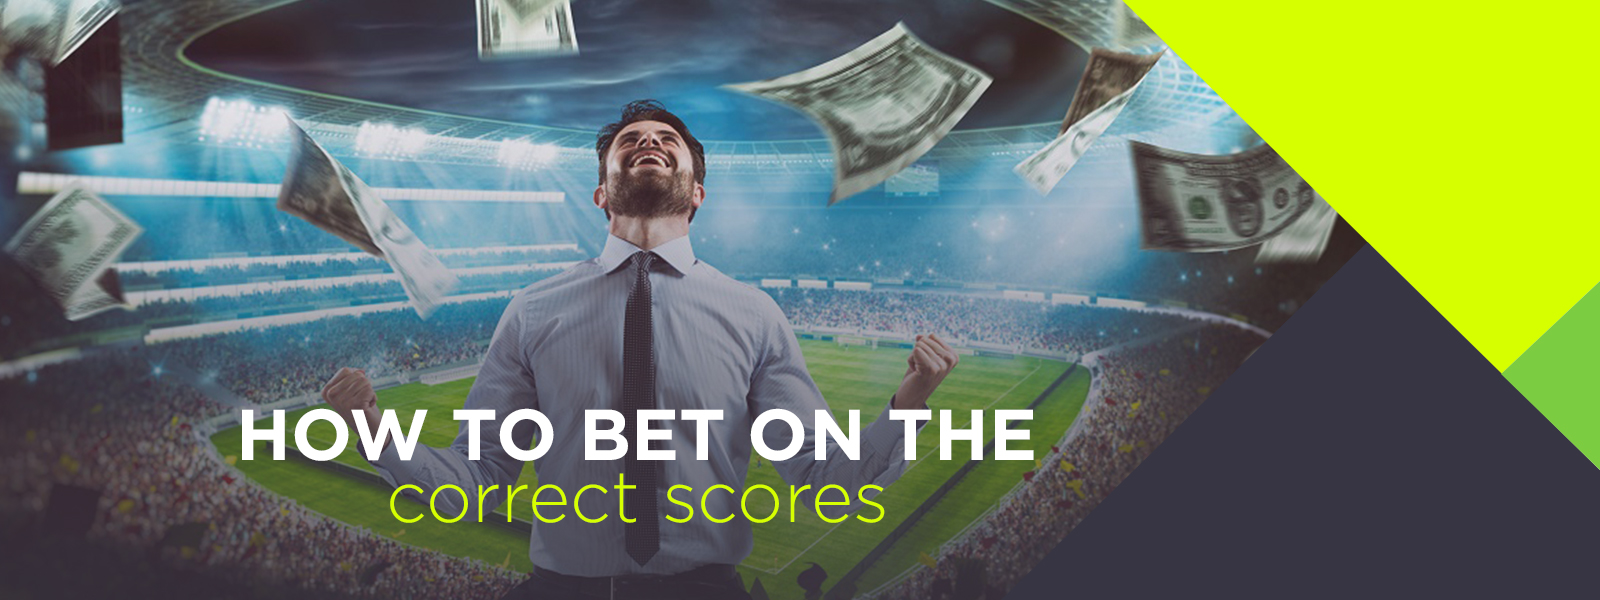 Learn How To Bet On The Correct Score